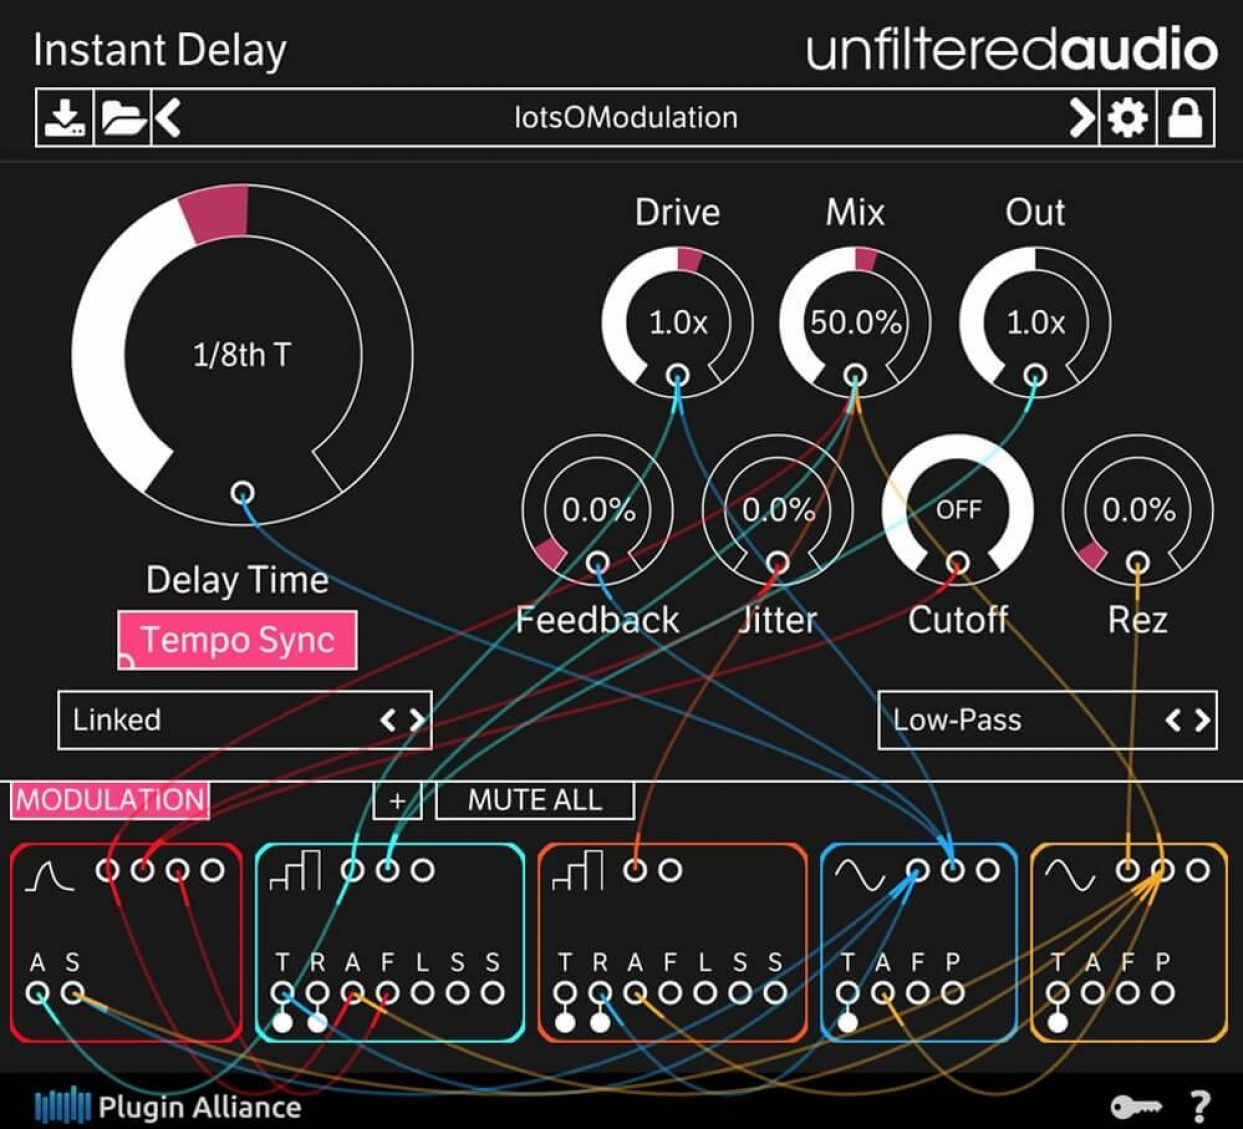 Unfiltered Audio announces availability of Instant Delay plugin exclusively from Plugin Alliance